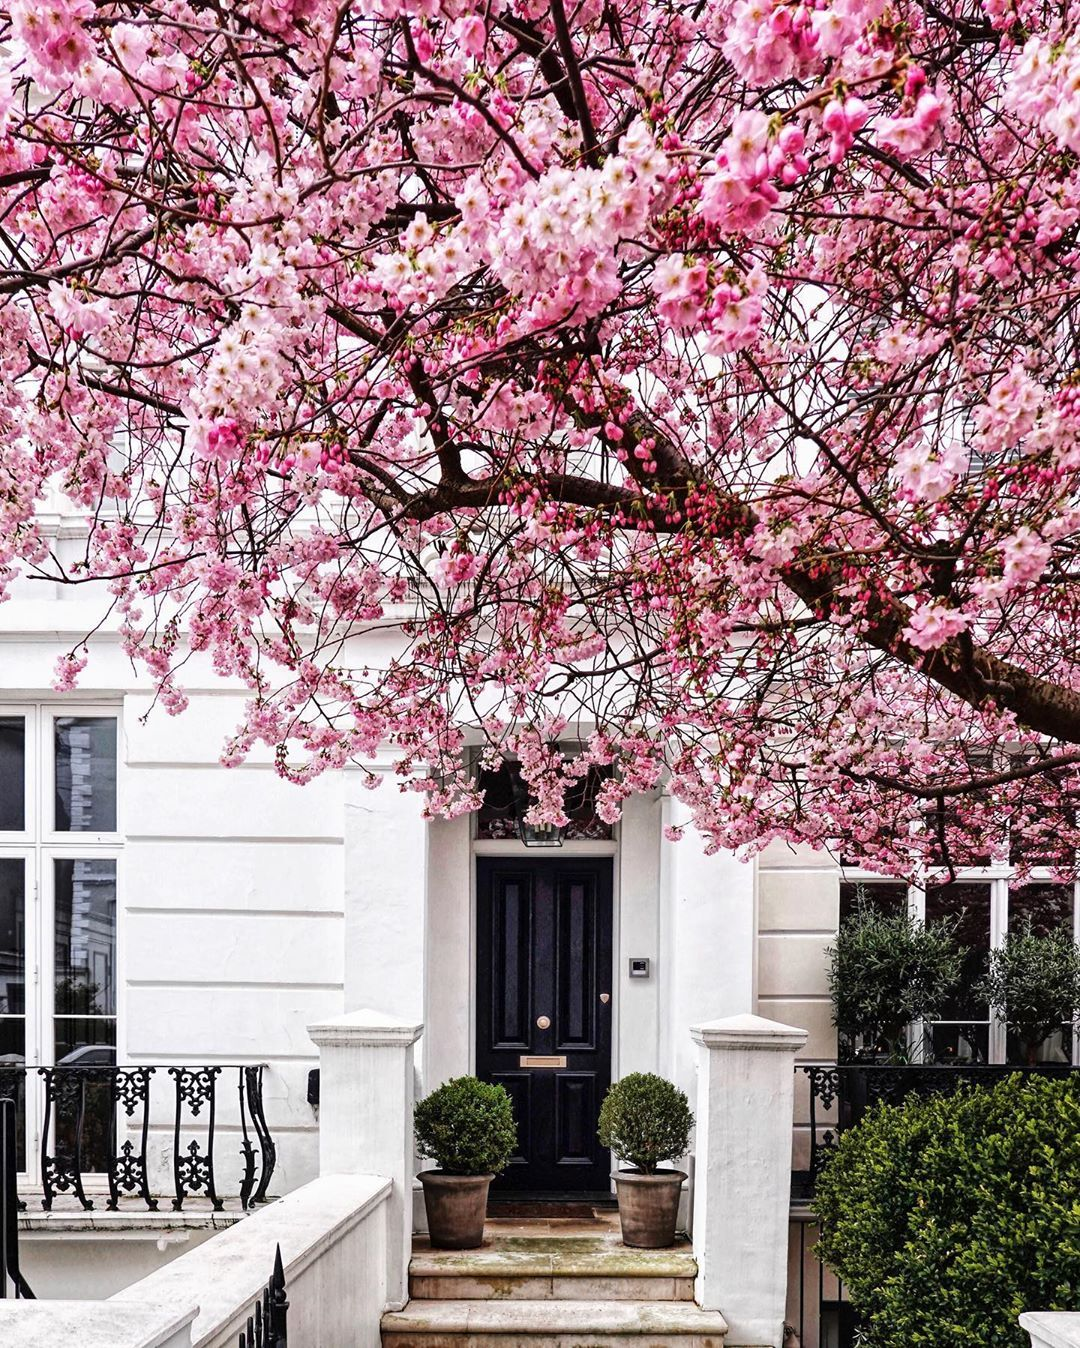 Alex Zouaghi On Instagram London Is Under The Cherry Blossom Tree Just A Little Somethi Blossom Trees Cherry Blossom Tree Backyard Landscaping